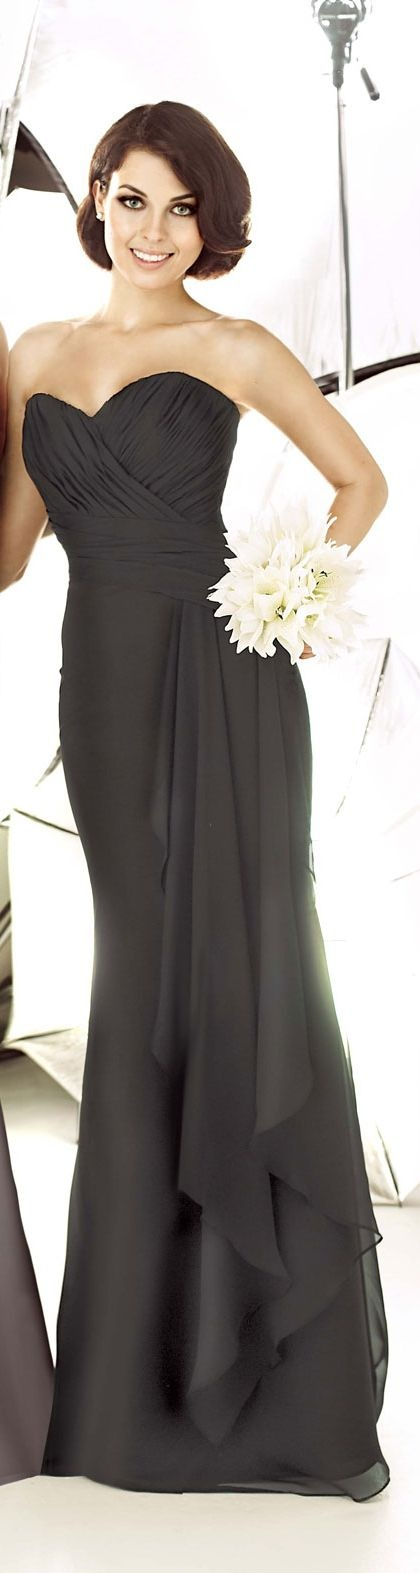 perfect for brides maids